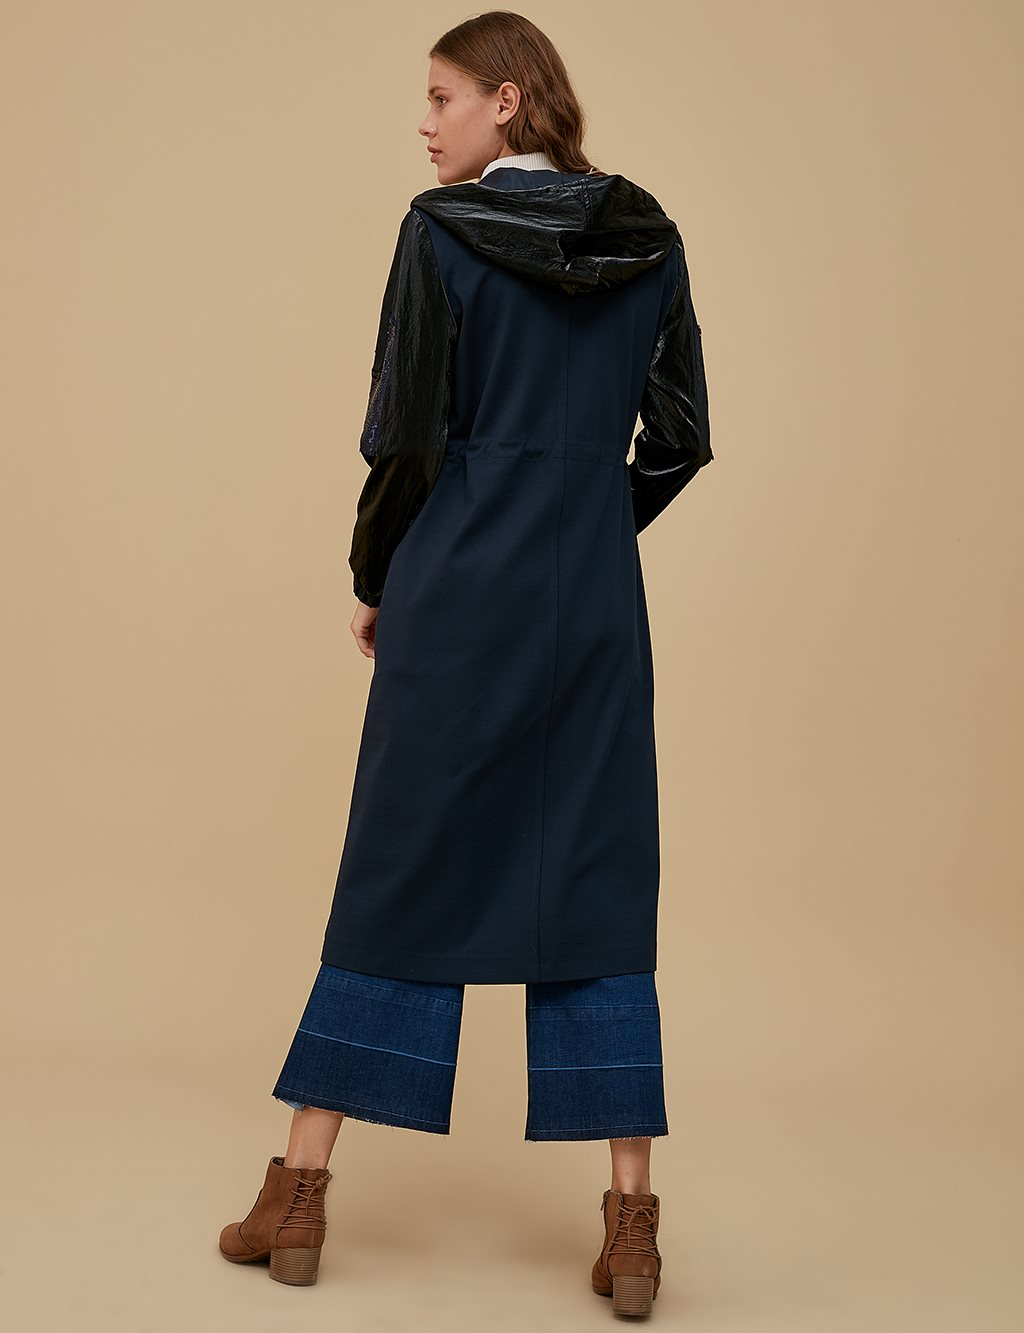 Embroidered Coat A9 14049 Navy